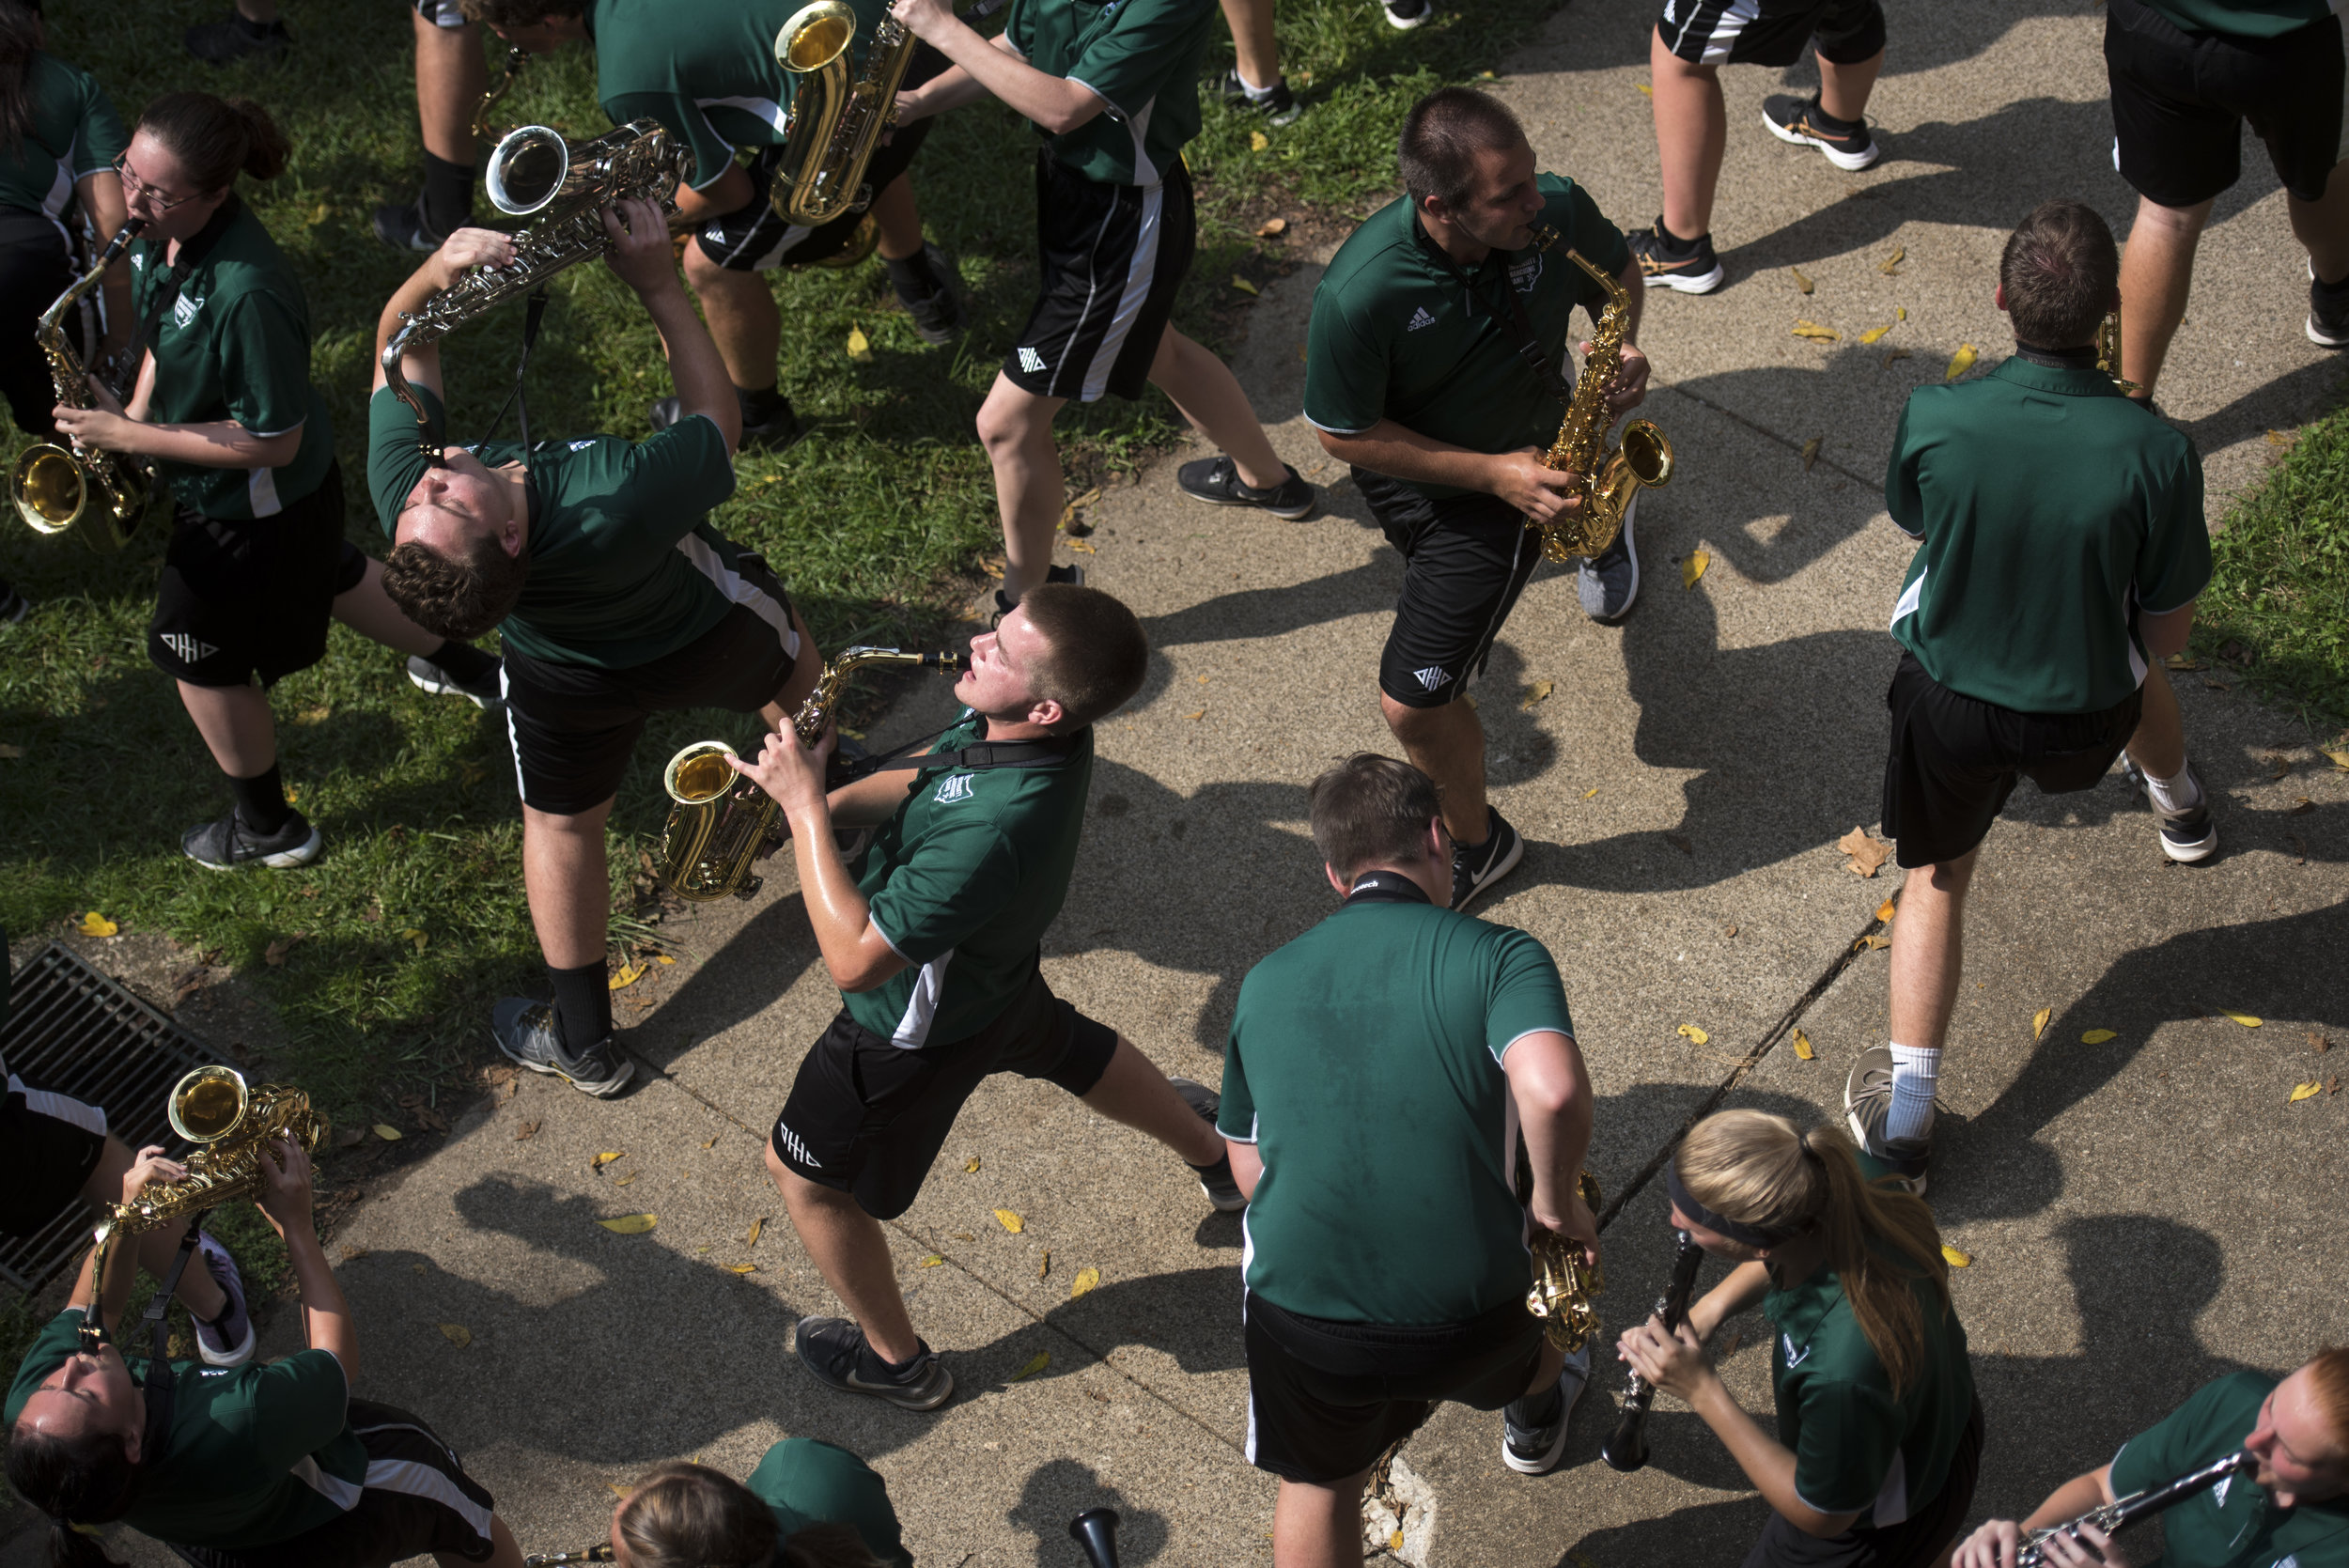 The Marching 110, Ohio University's marching band, performs at the involvement fair on College Green during Welcome Weekend on Aug. 26, 2018 in Athens, Ohio.